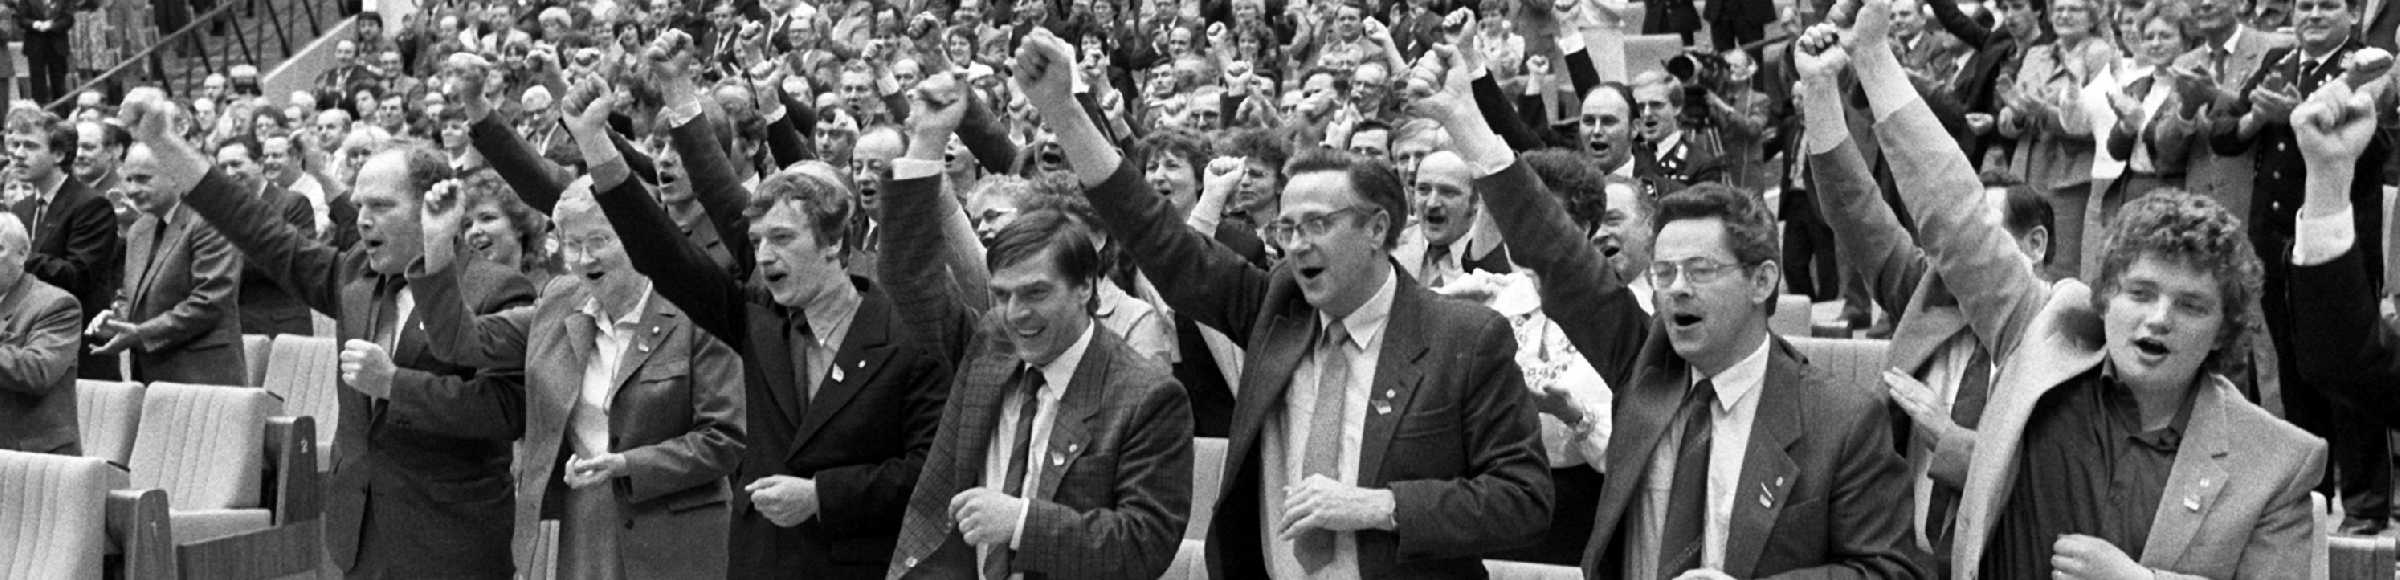 Delegates at the XI. Party Congress of the SED Socialist Unity Party of Germany in Berlin, capital of the GDR